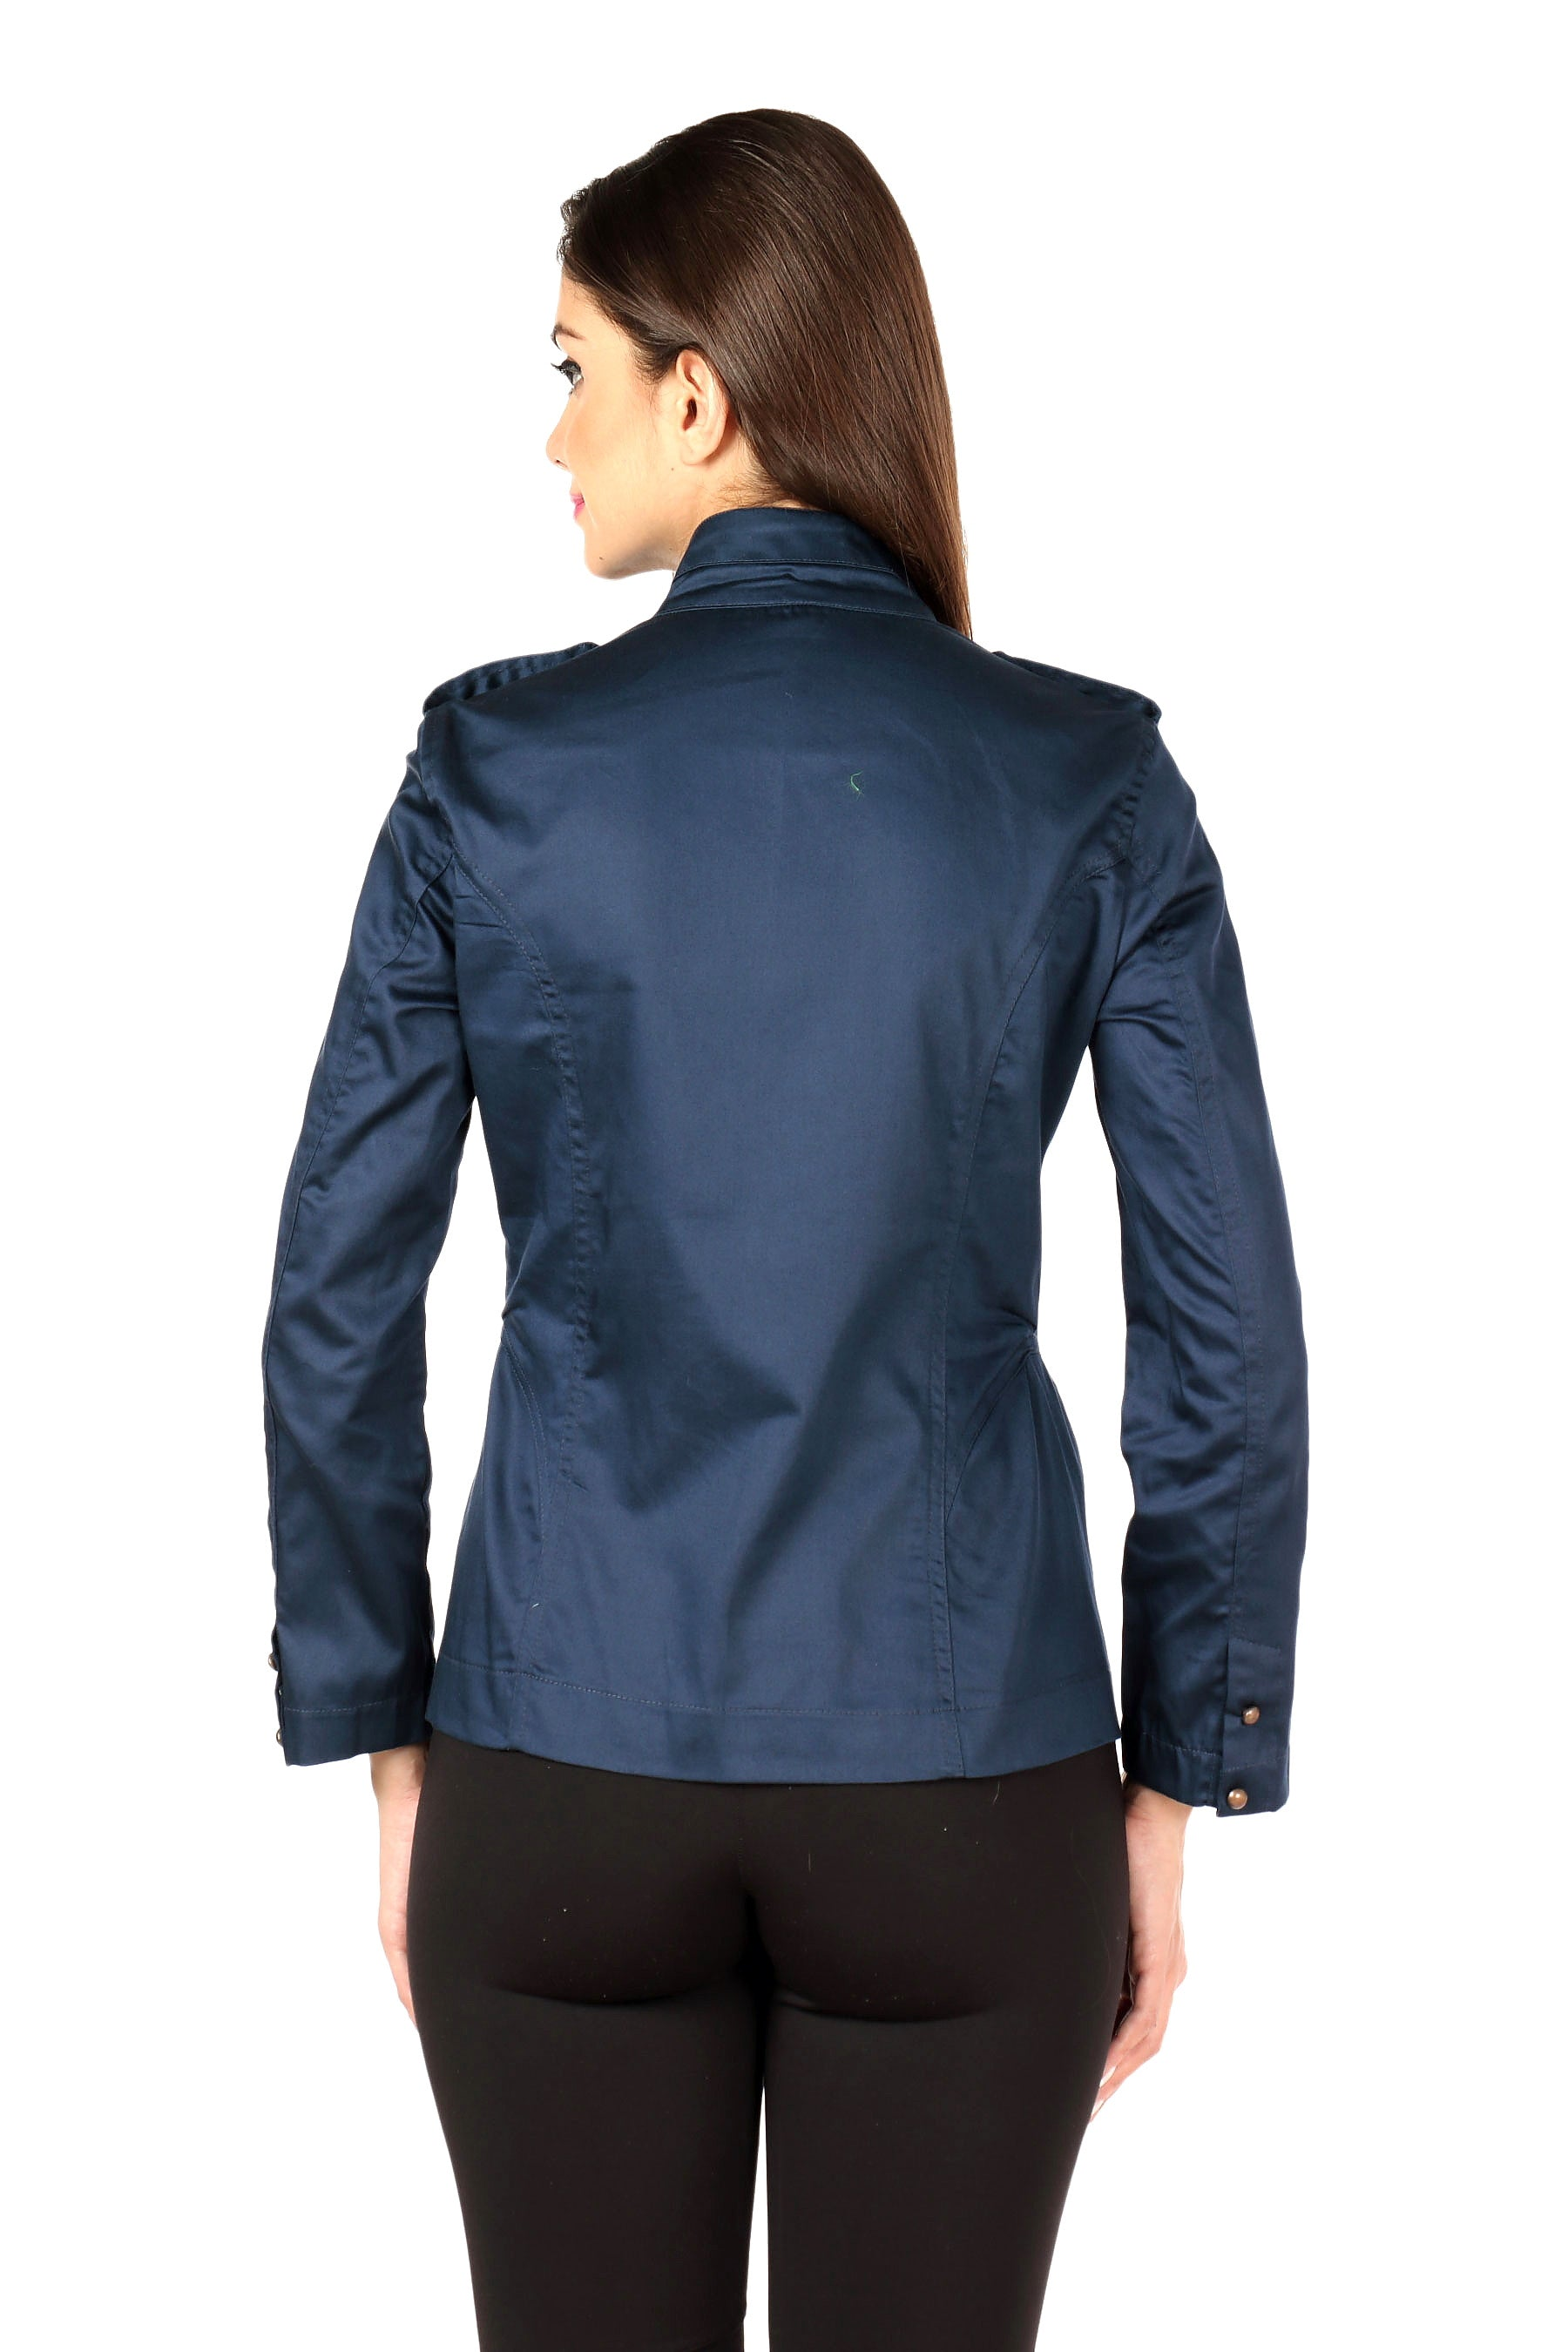 Military Jacket in Navy Back